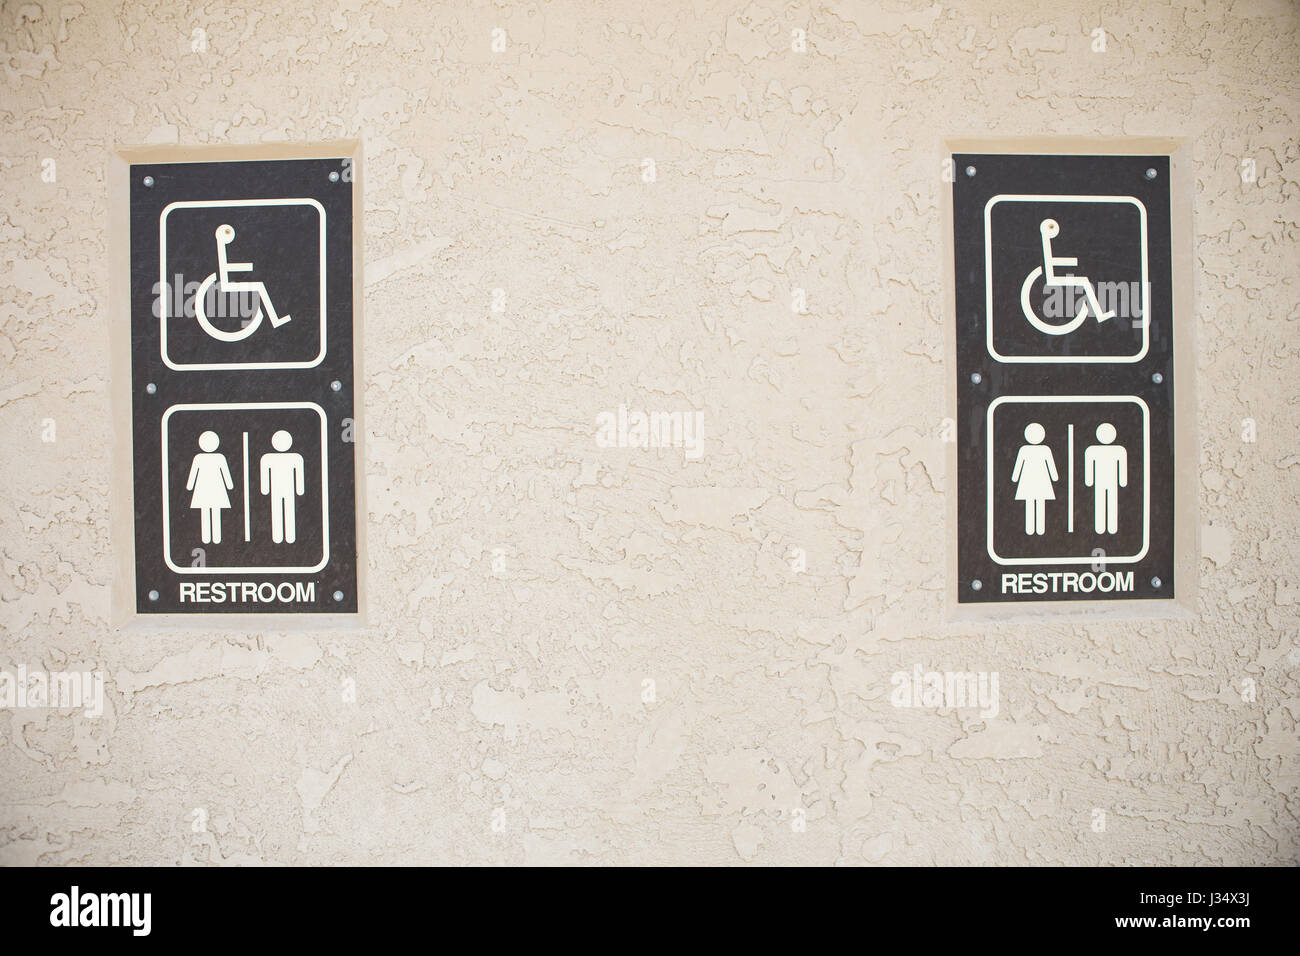 Bathroom Bill Stock Photos Images Alamy Wiring Shaver Socket In Unisex Public Exterior Sign Image